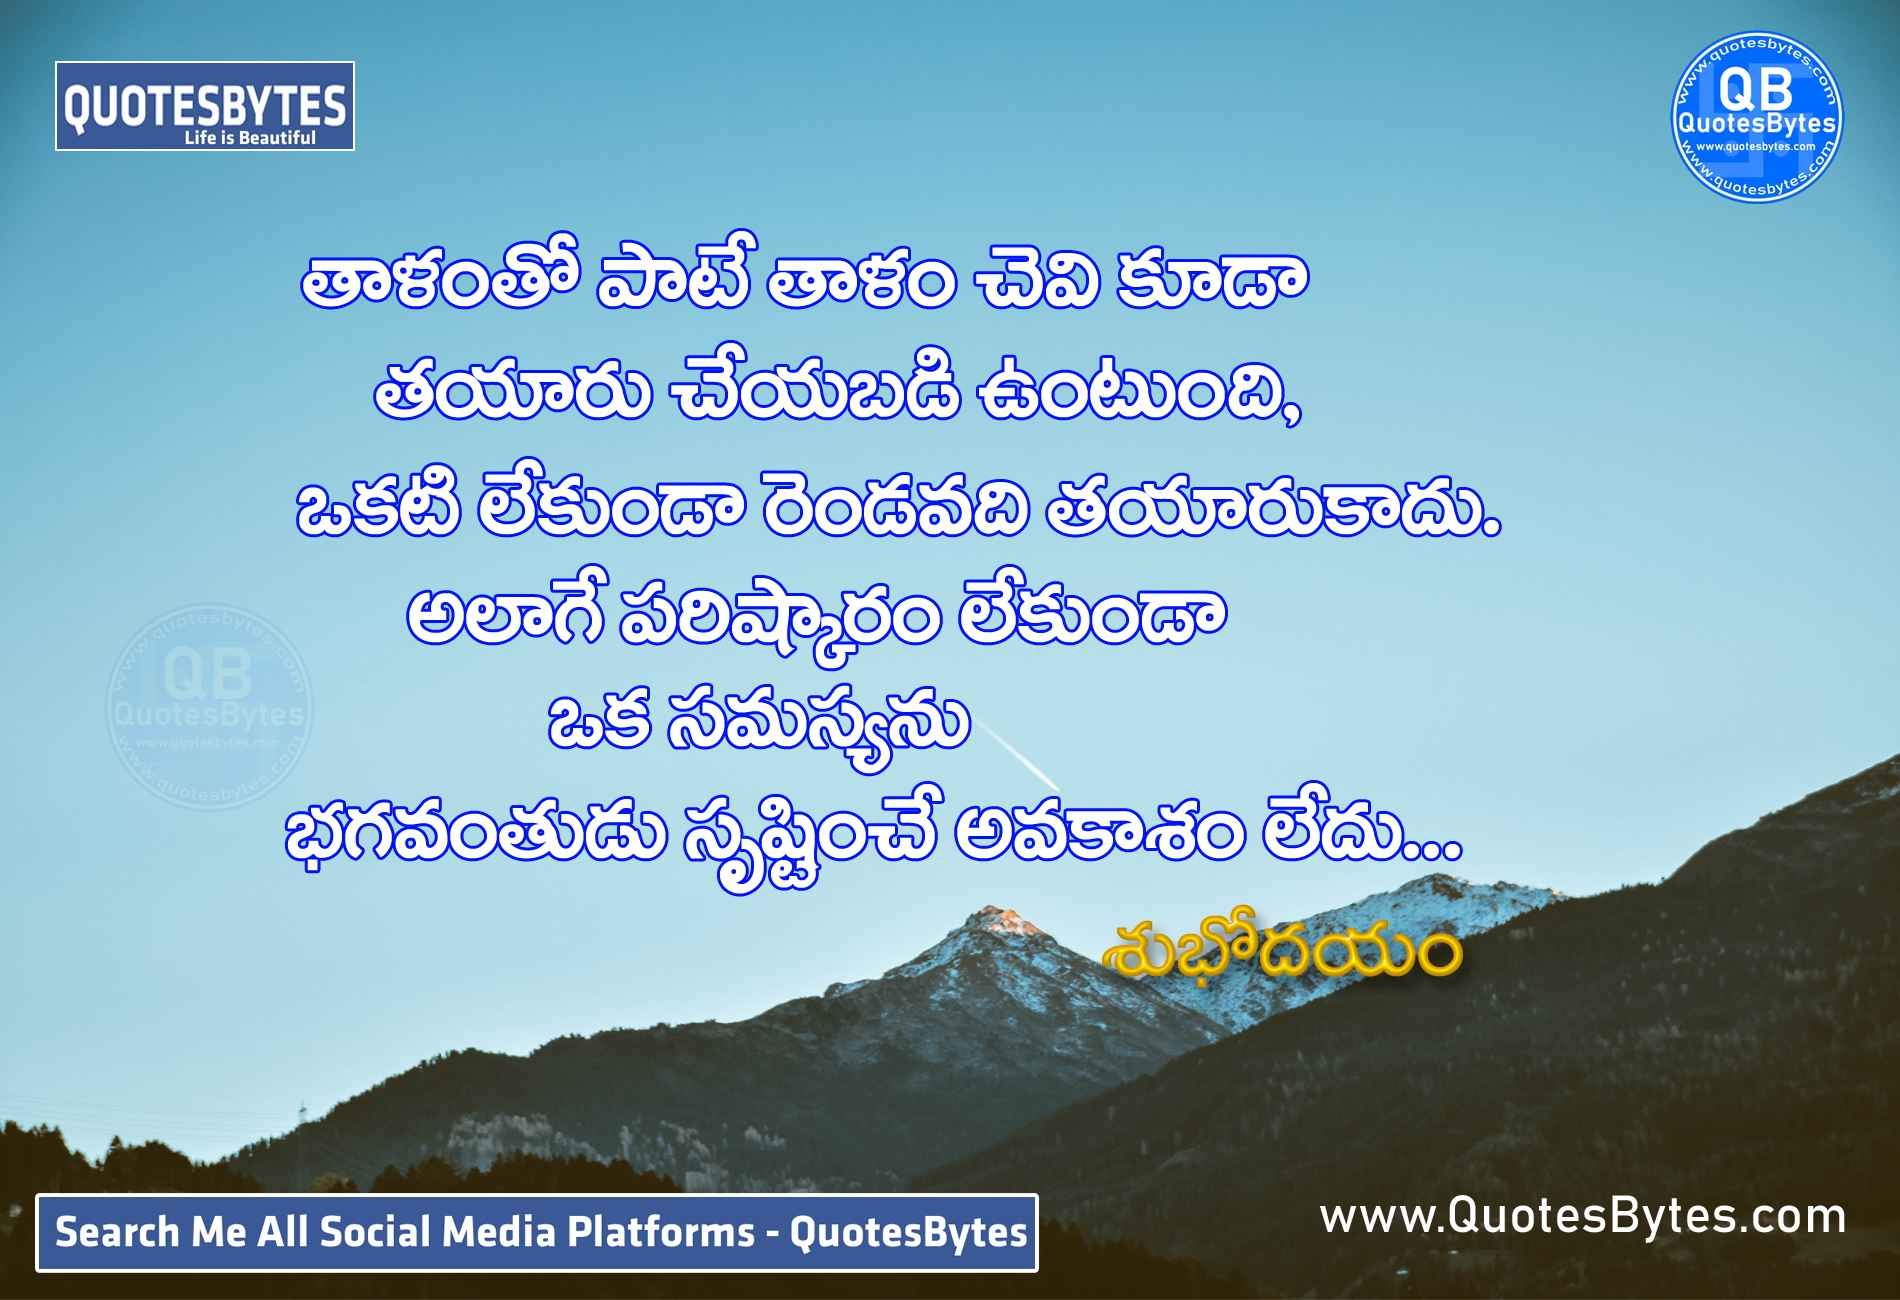 good morning images in telugu-good morning images with telugu quotes